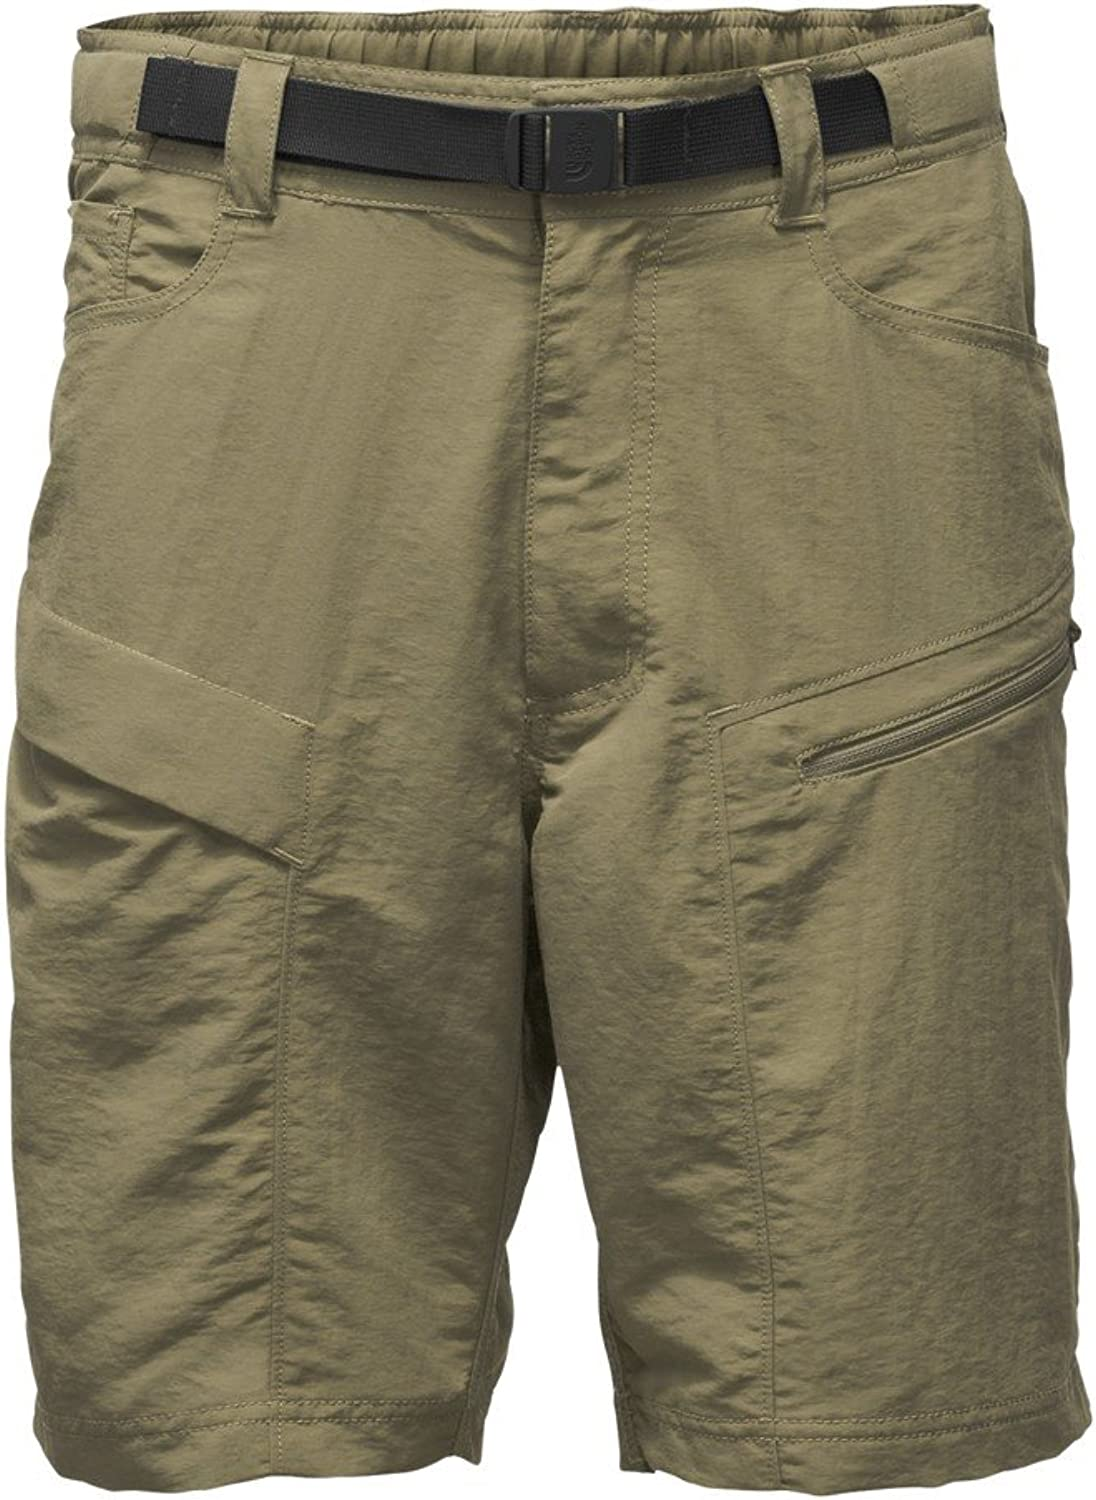 THE NORTH FACE Paramount Trail Shorts Men beige 2019 sport shorts